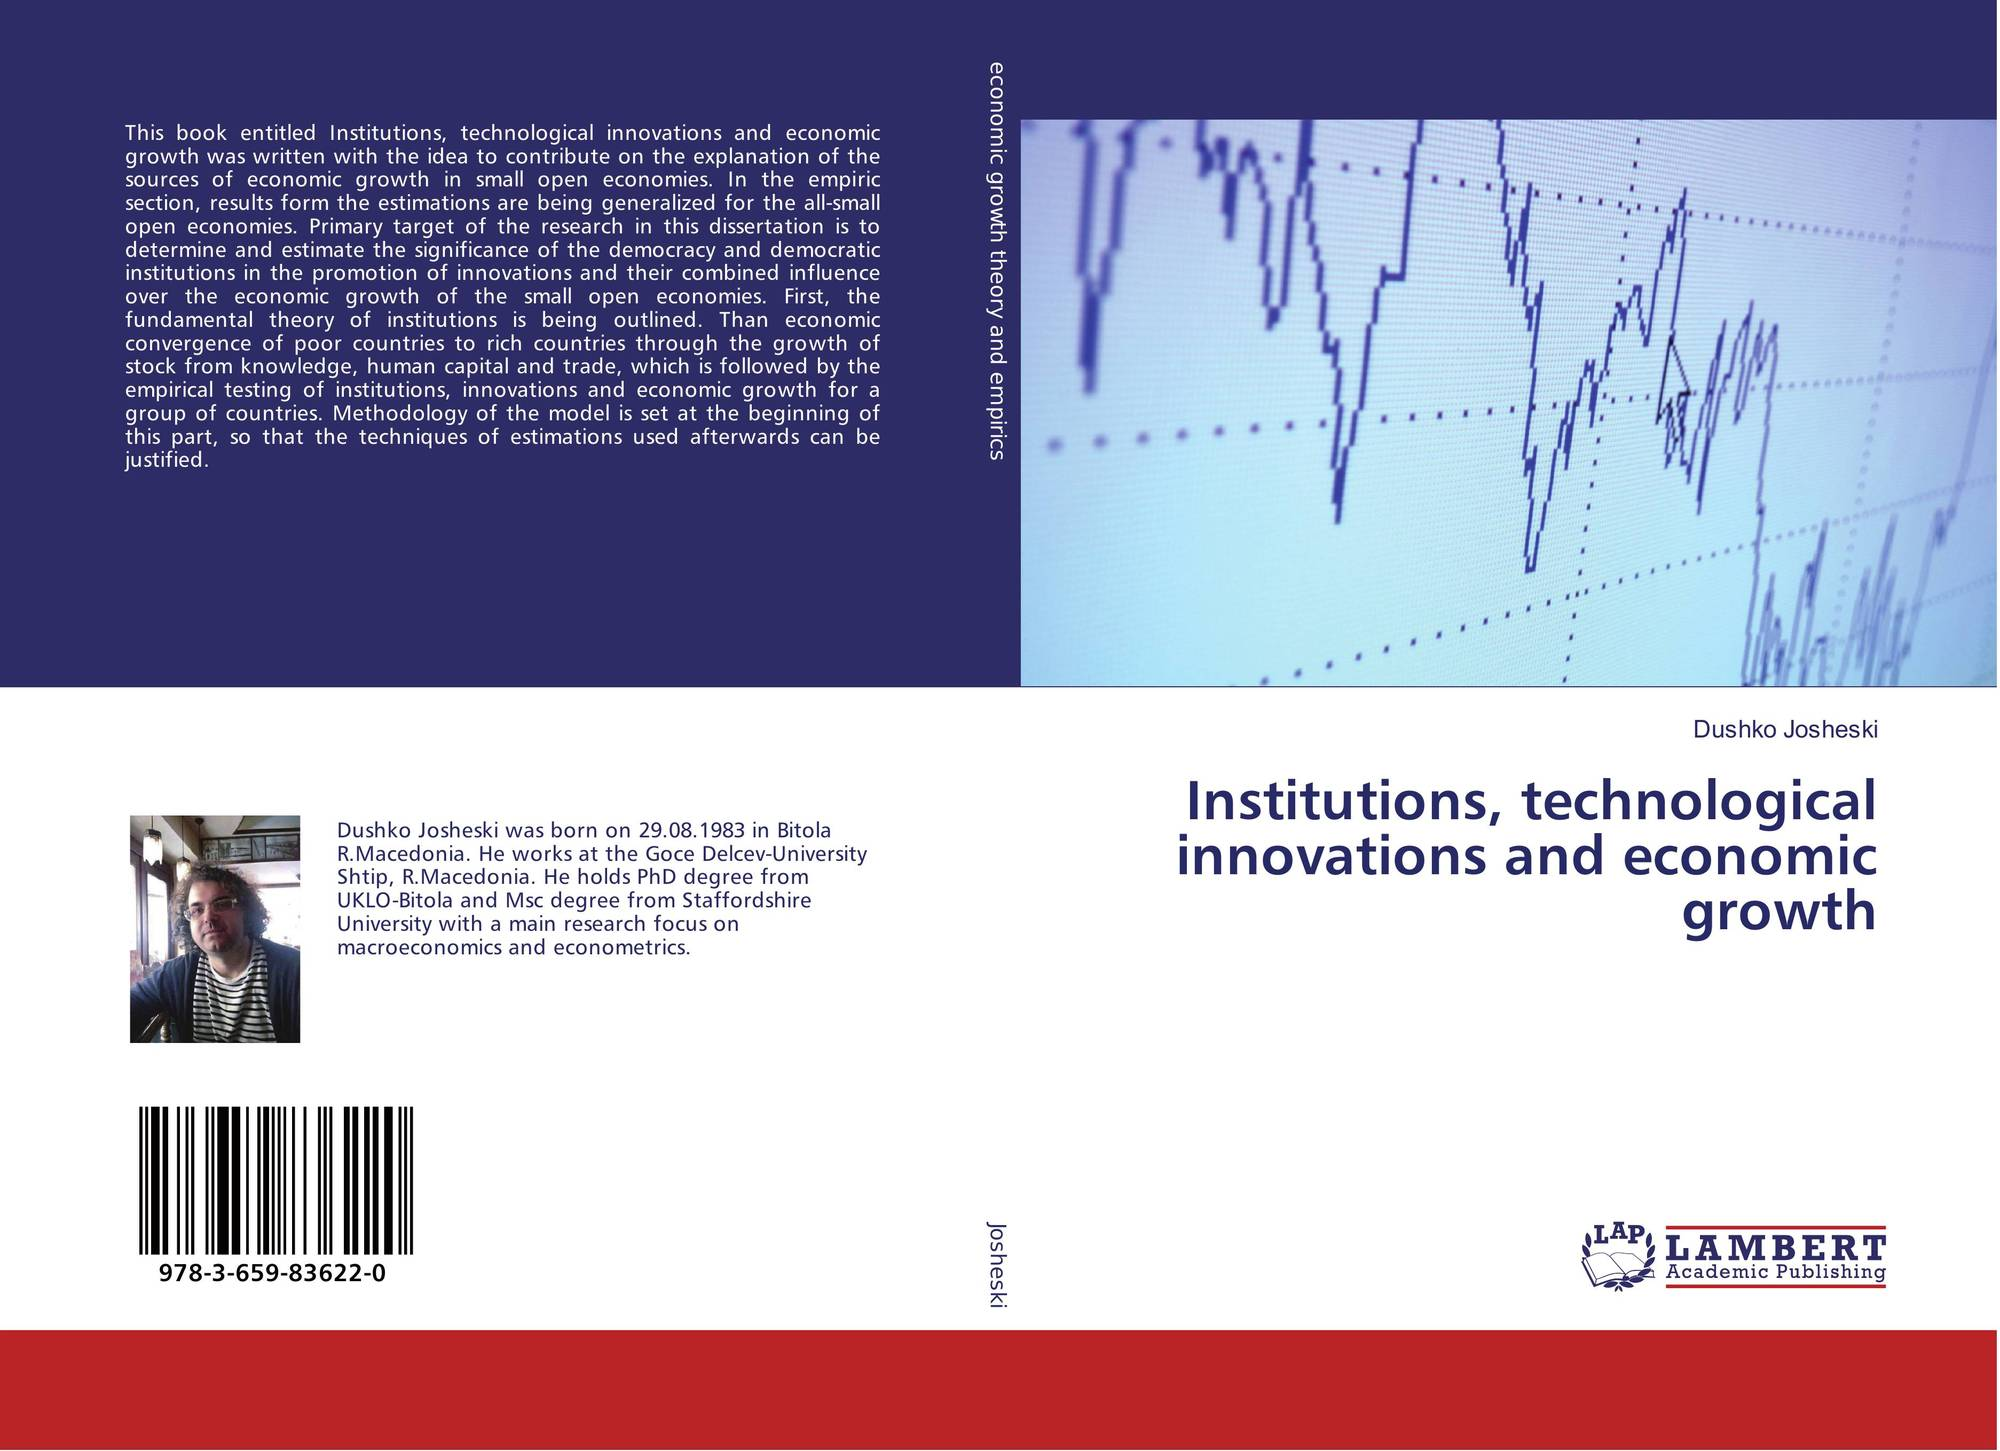 essays on illegal activities institutions and economic growth The institute of economic growth (acronym ieg), is an autonomous body under the government of india, founded in 1958 by the renowned economist, v k r v rao, for advanced research on economic and social development.